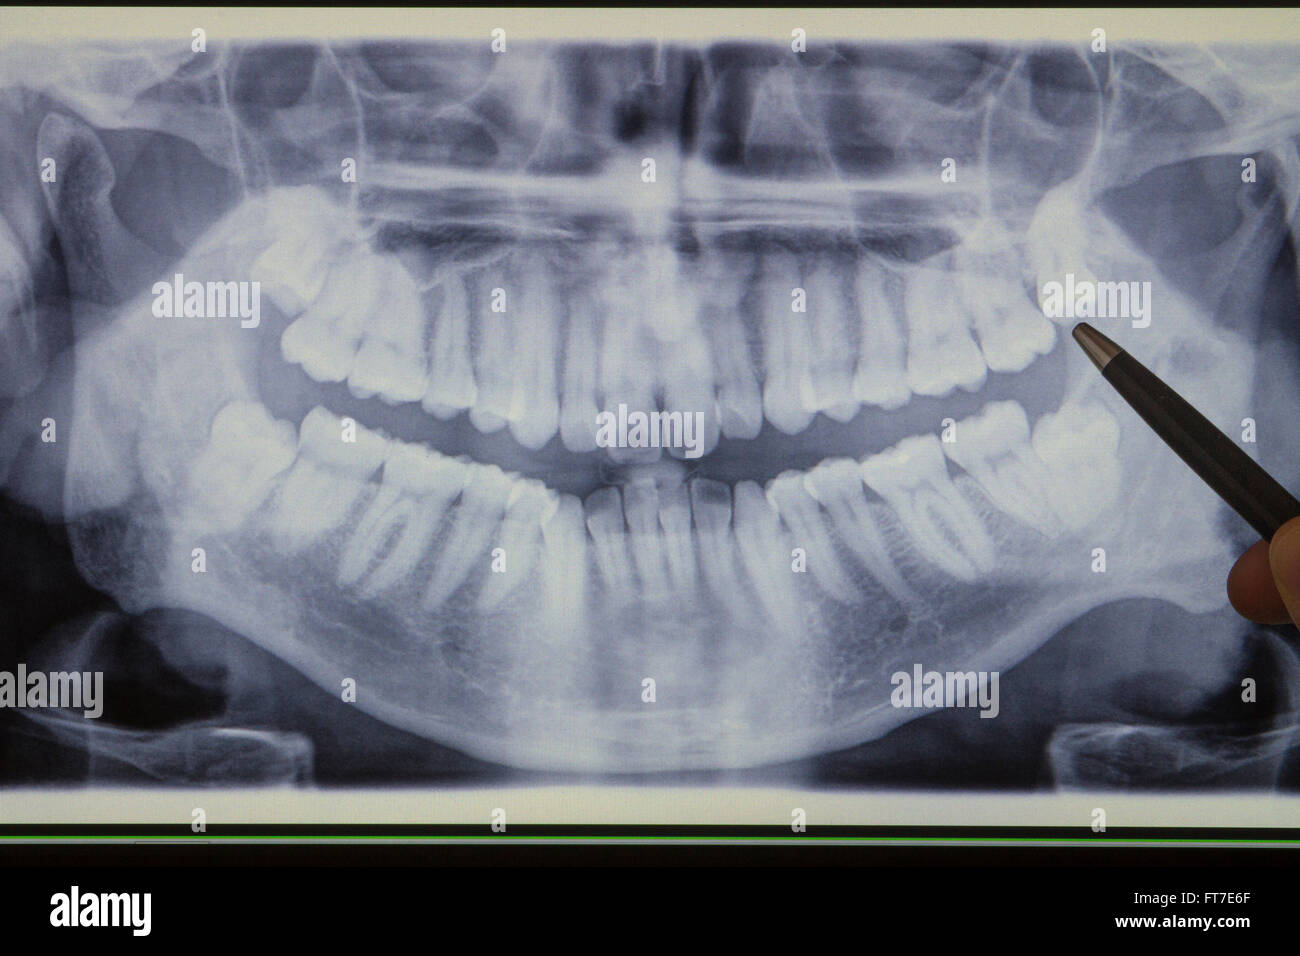 Pen indicating a wisdom tooth on a panoramic dental radiograph - Stock Image